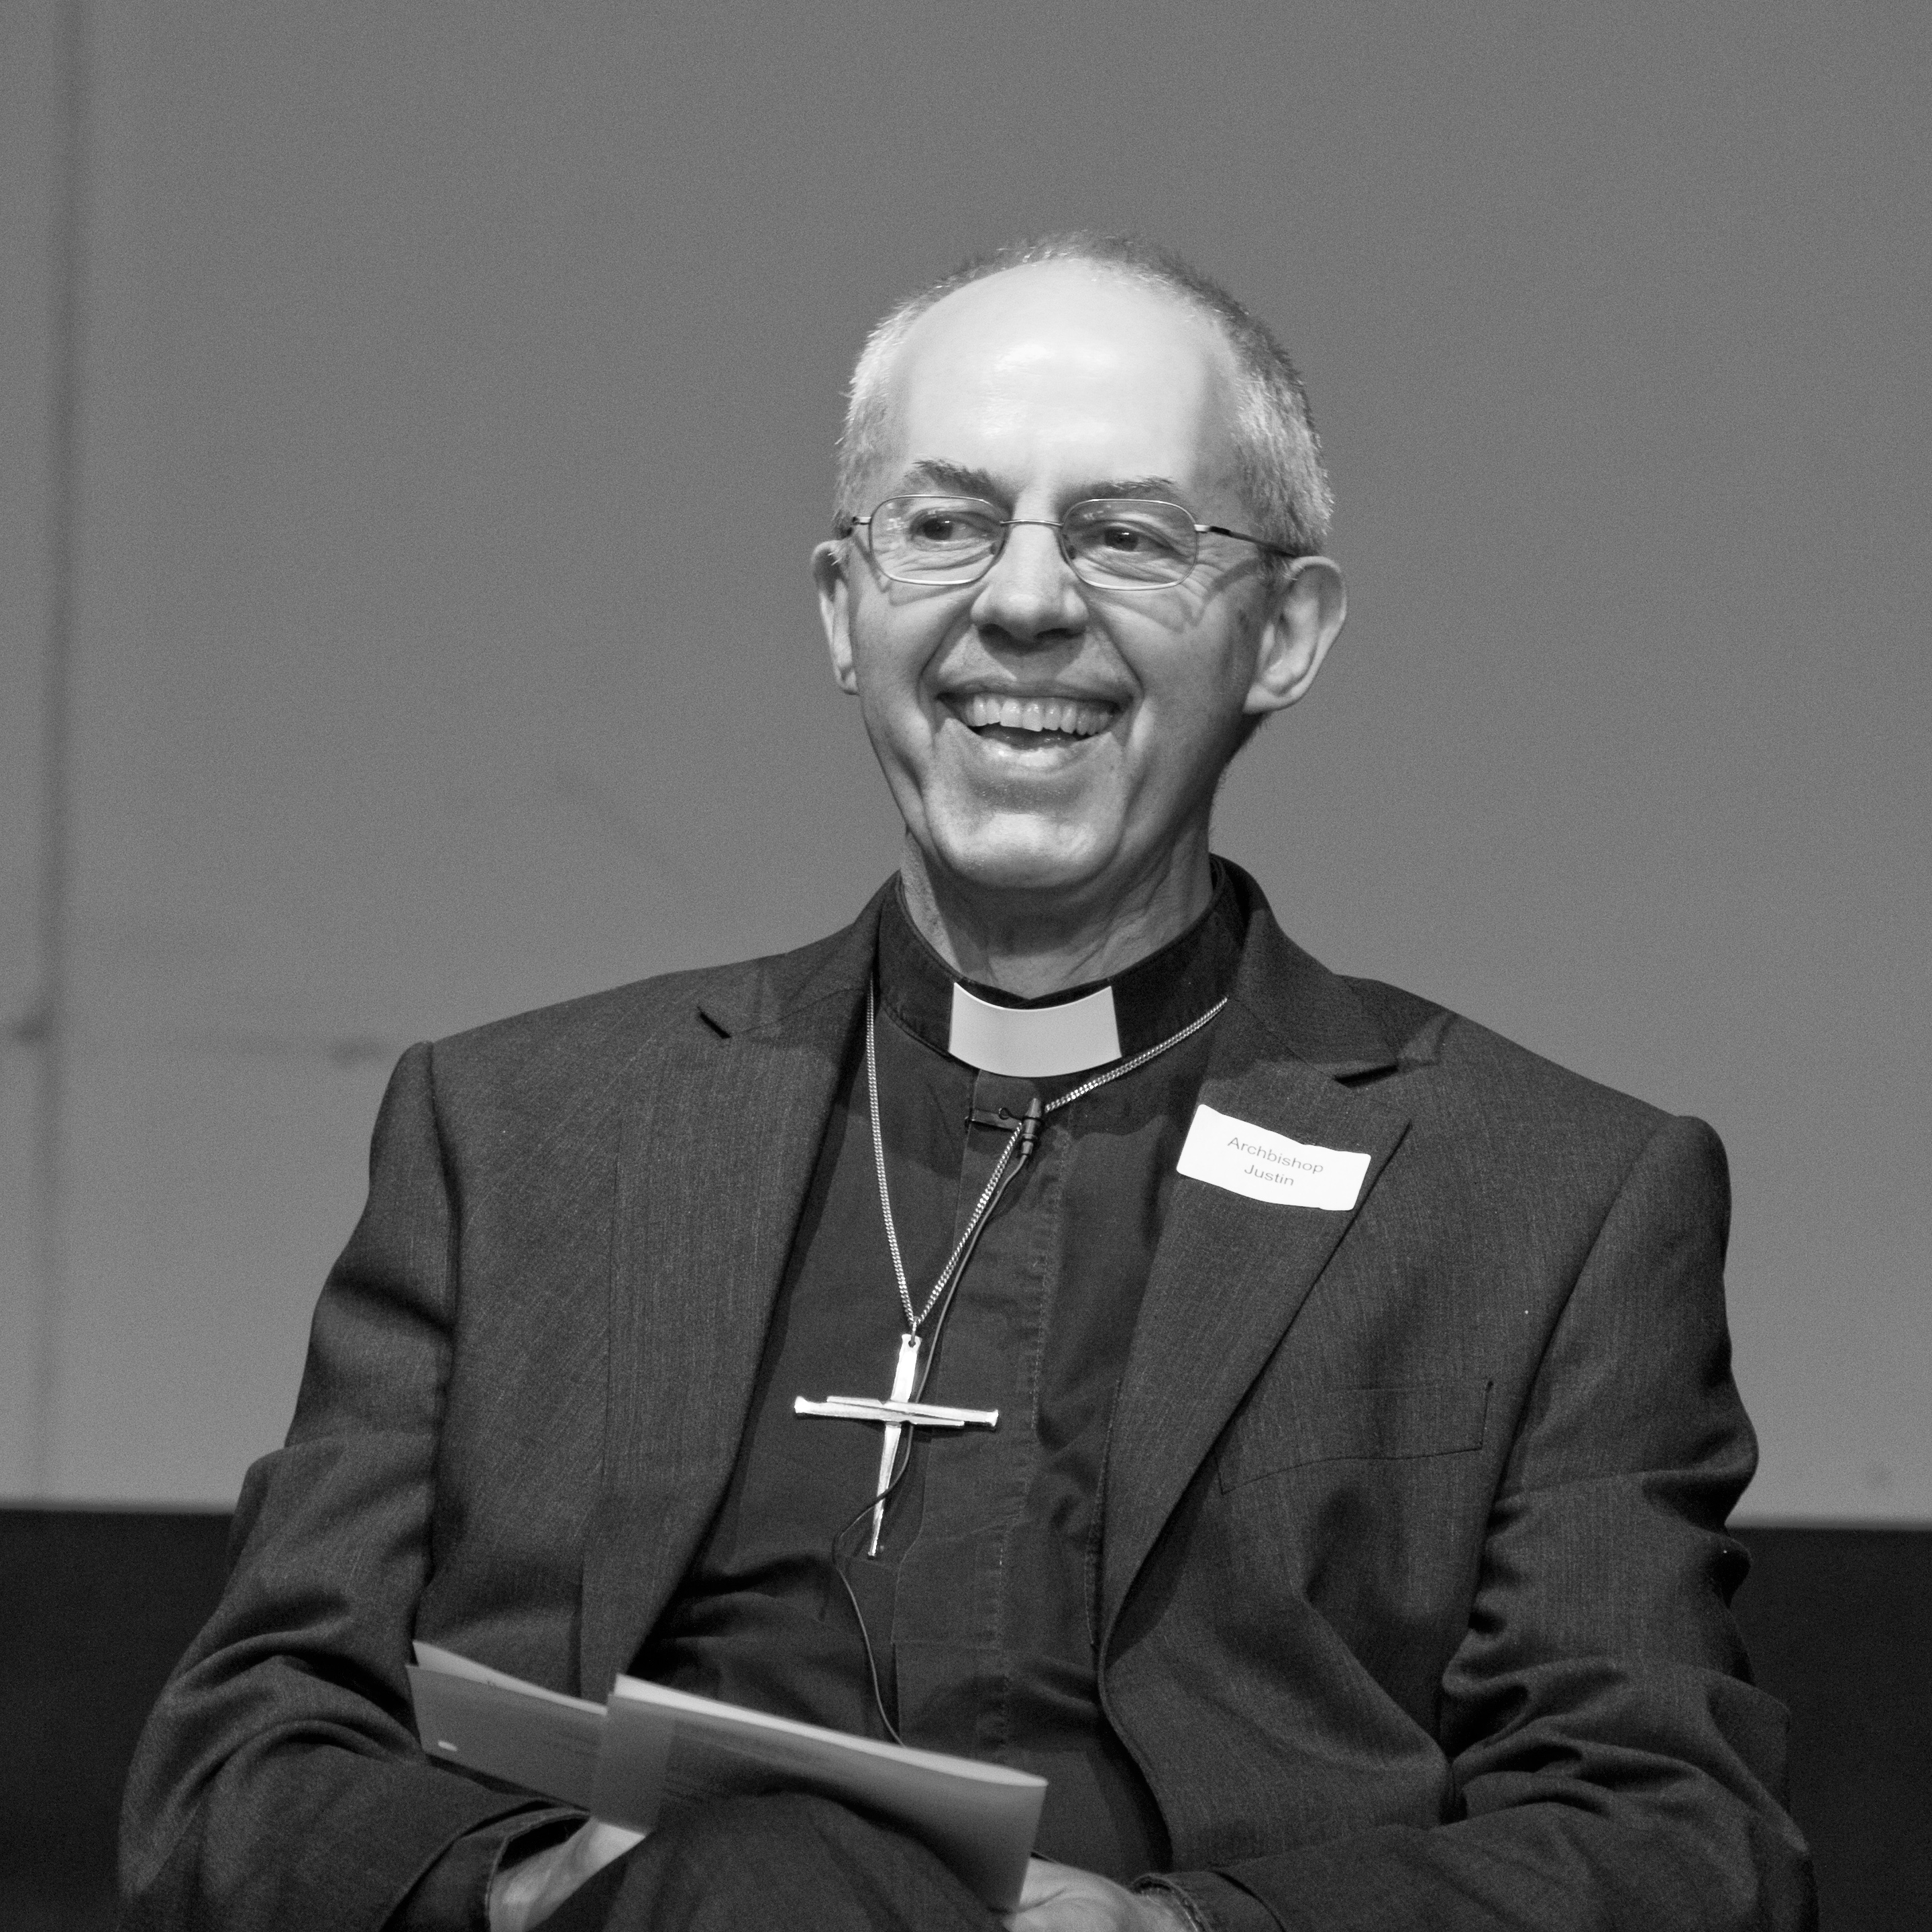 Justin Welby laughing on stage in Bristol